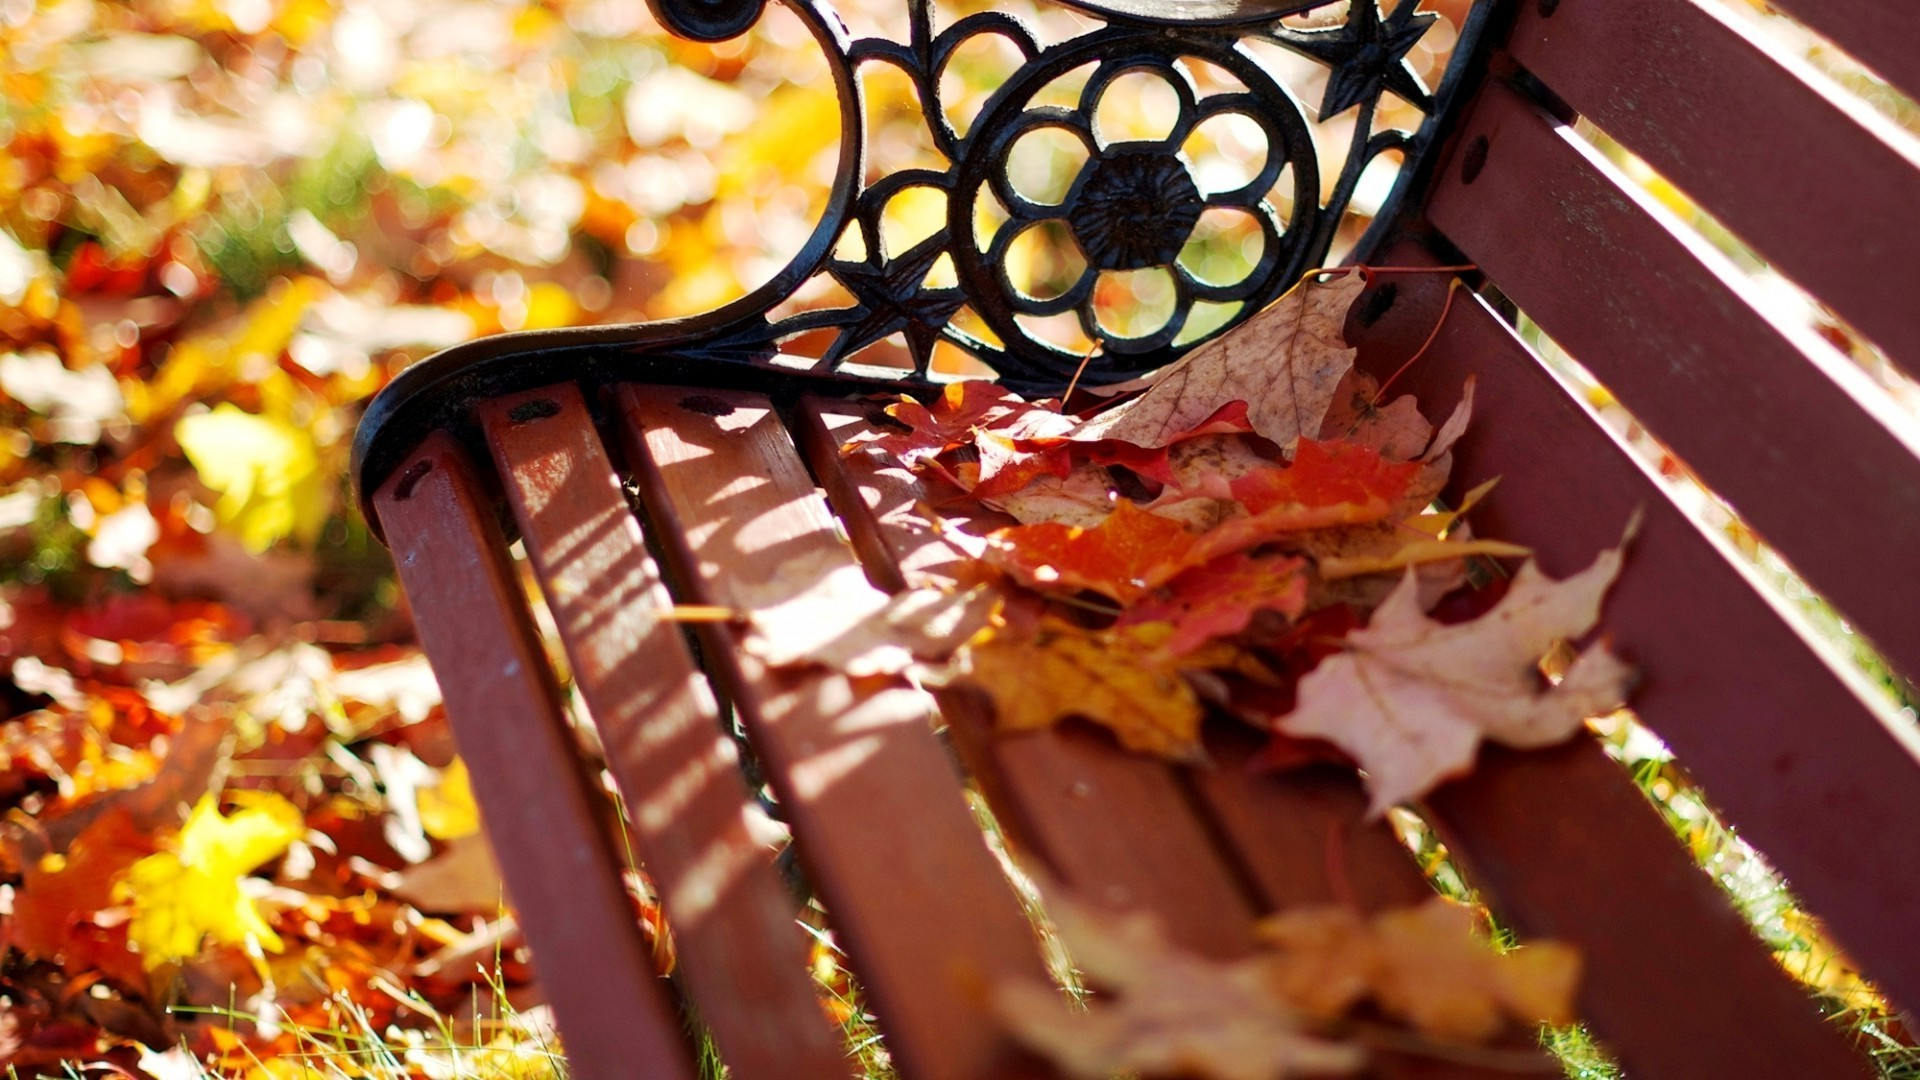 Bench with autumn leaves